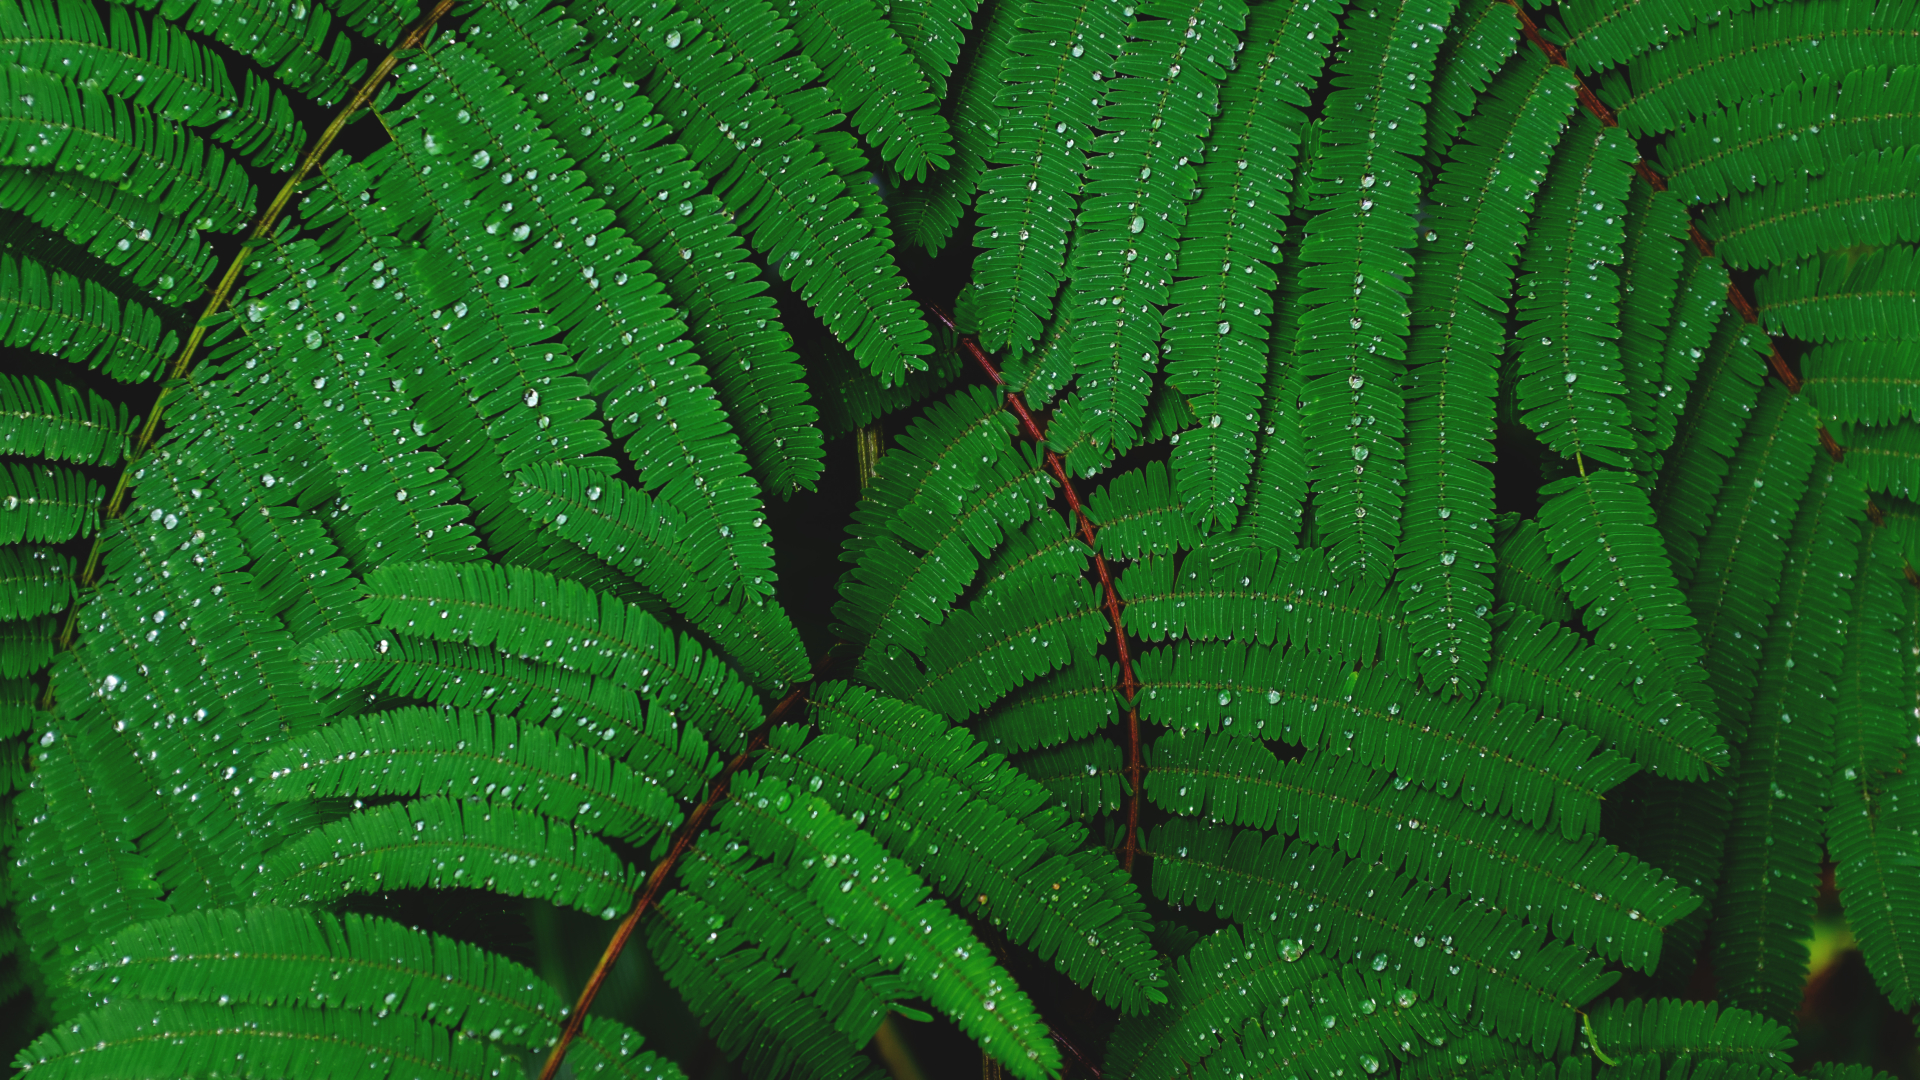 1920x1080 Plant Drops Leaves 1080p Laptop Full Hd Wallpaper Hd Nature 4k Wallpapers Images Photos And Background